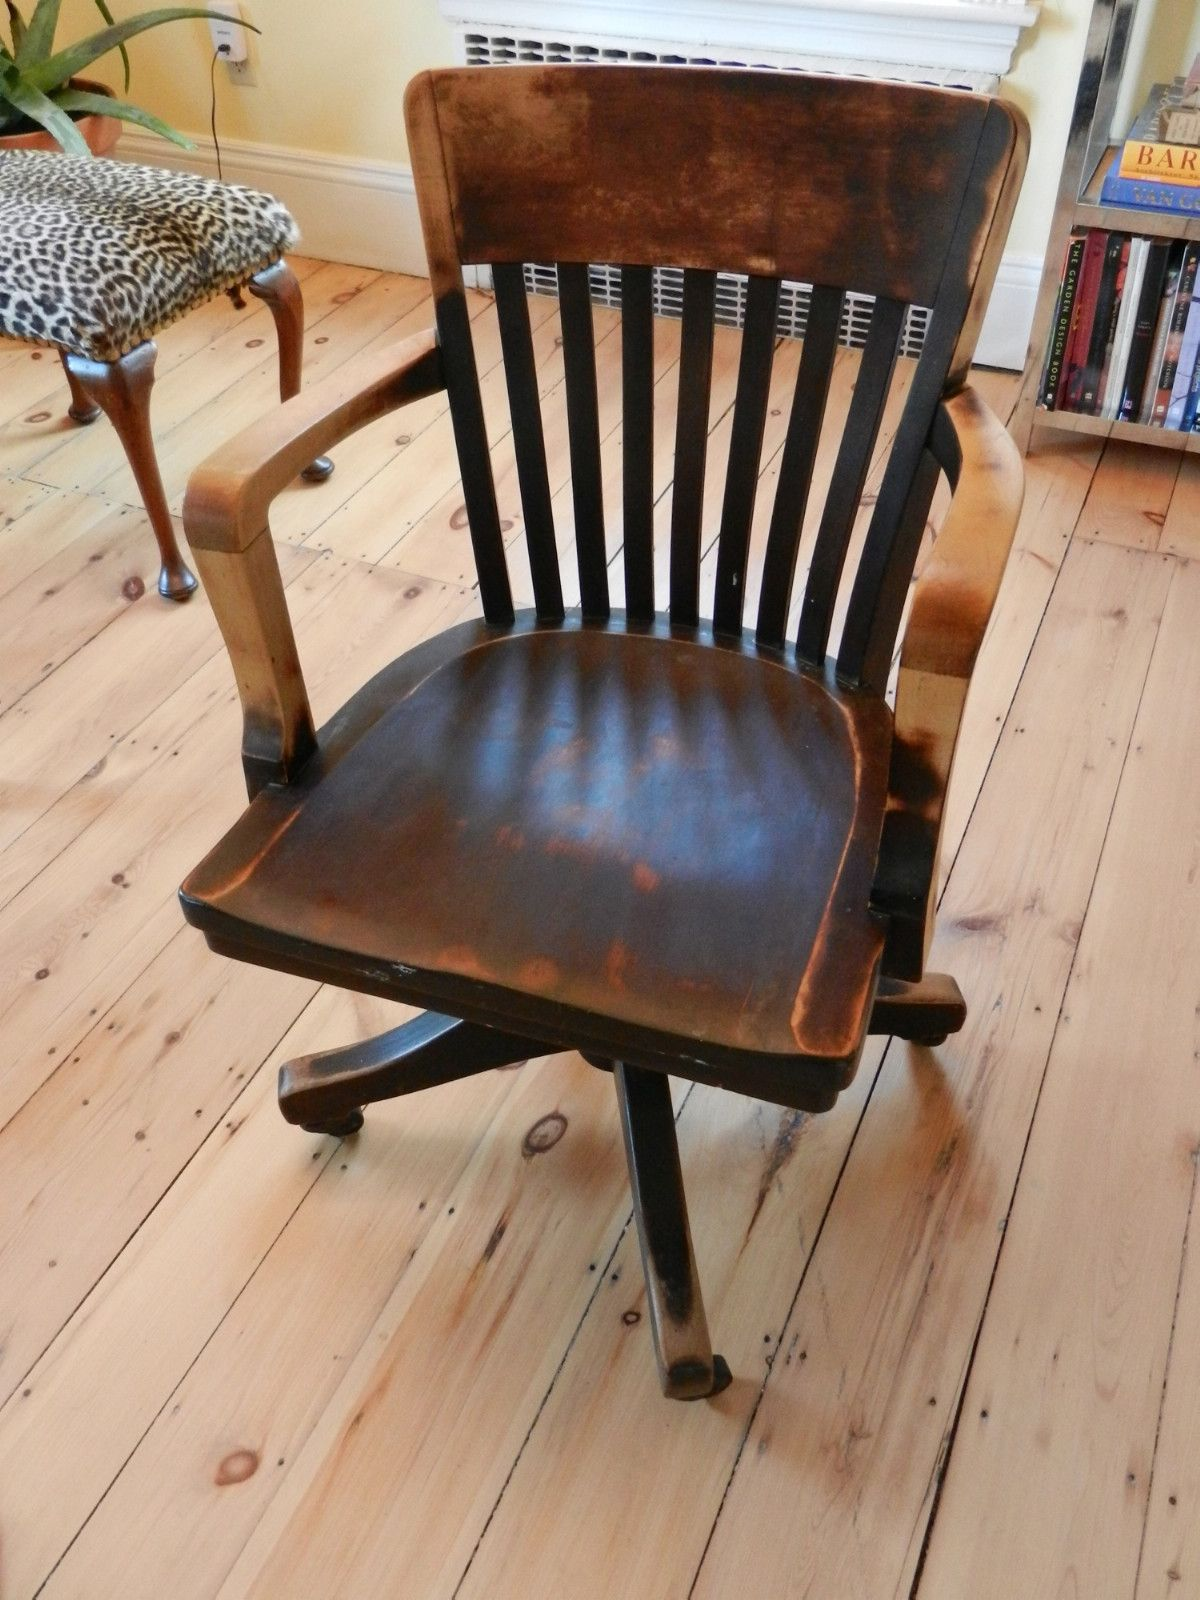 Bon Vintage Wood Desk Chair Just Bought This Chair. Canu0027t Wait To Refinish It!